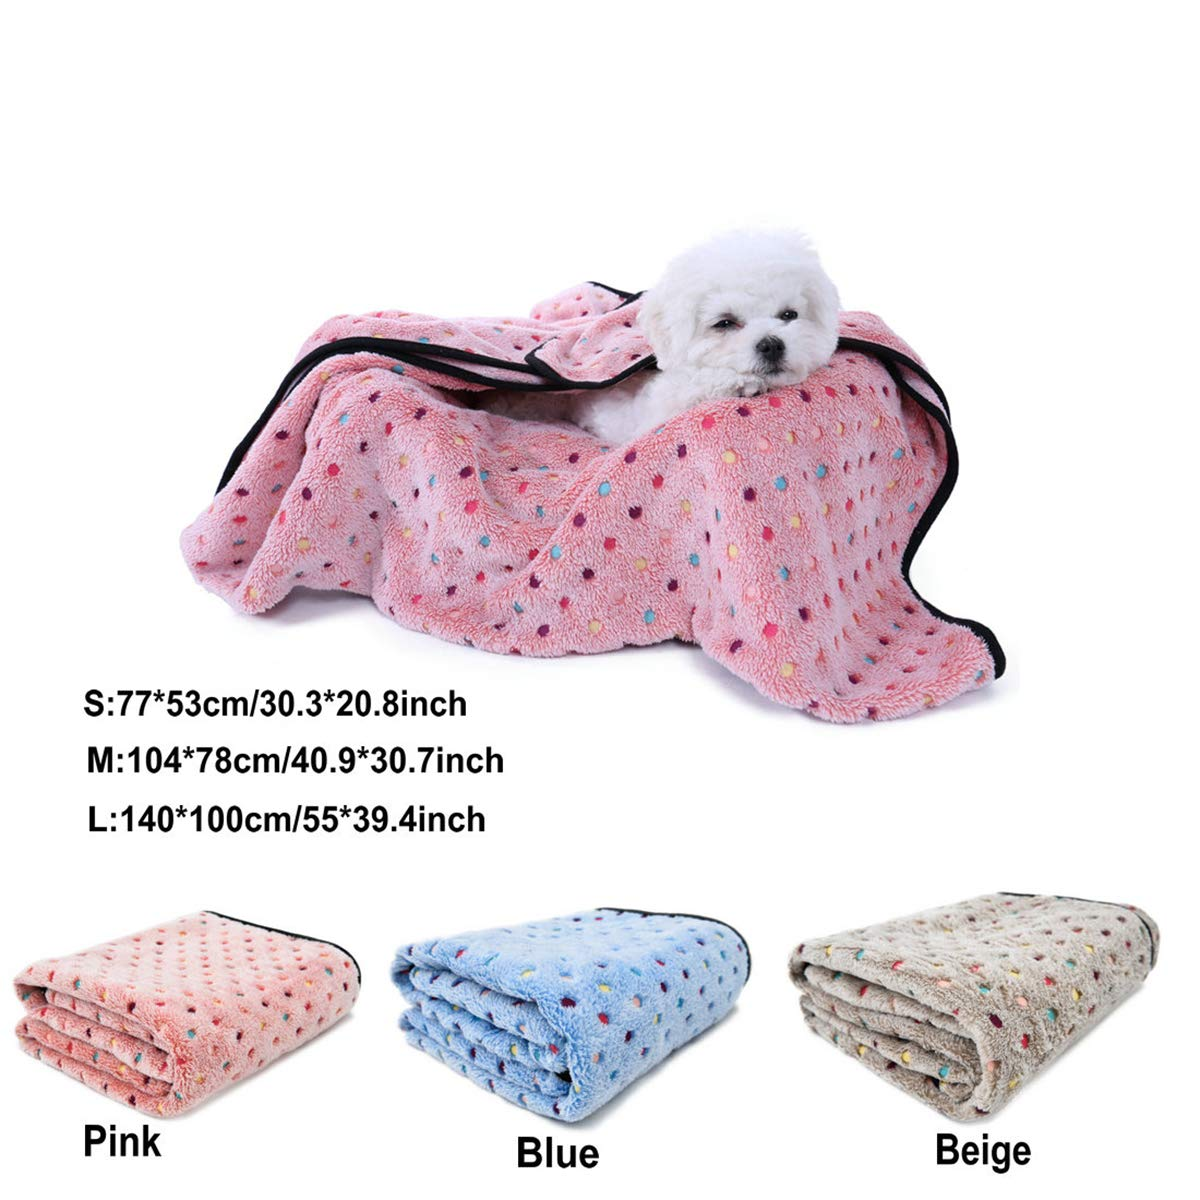 PAWZ Road Pet Dog Manta Fluffy Fleece Fabric Suave y Linda Warm Dot Print Manta Lavable para Gatos y Perros Rojo 77 * 53cm: Amazon.es: Productos para ...